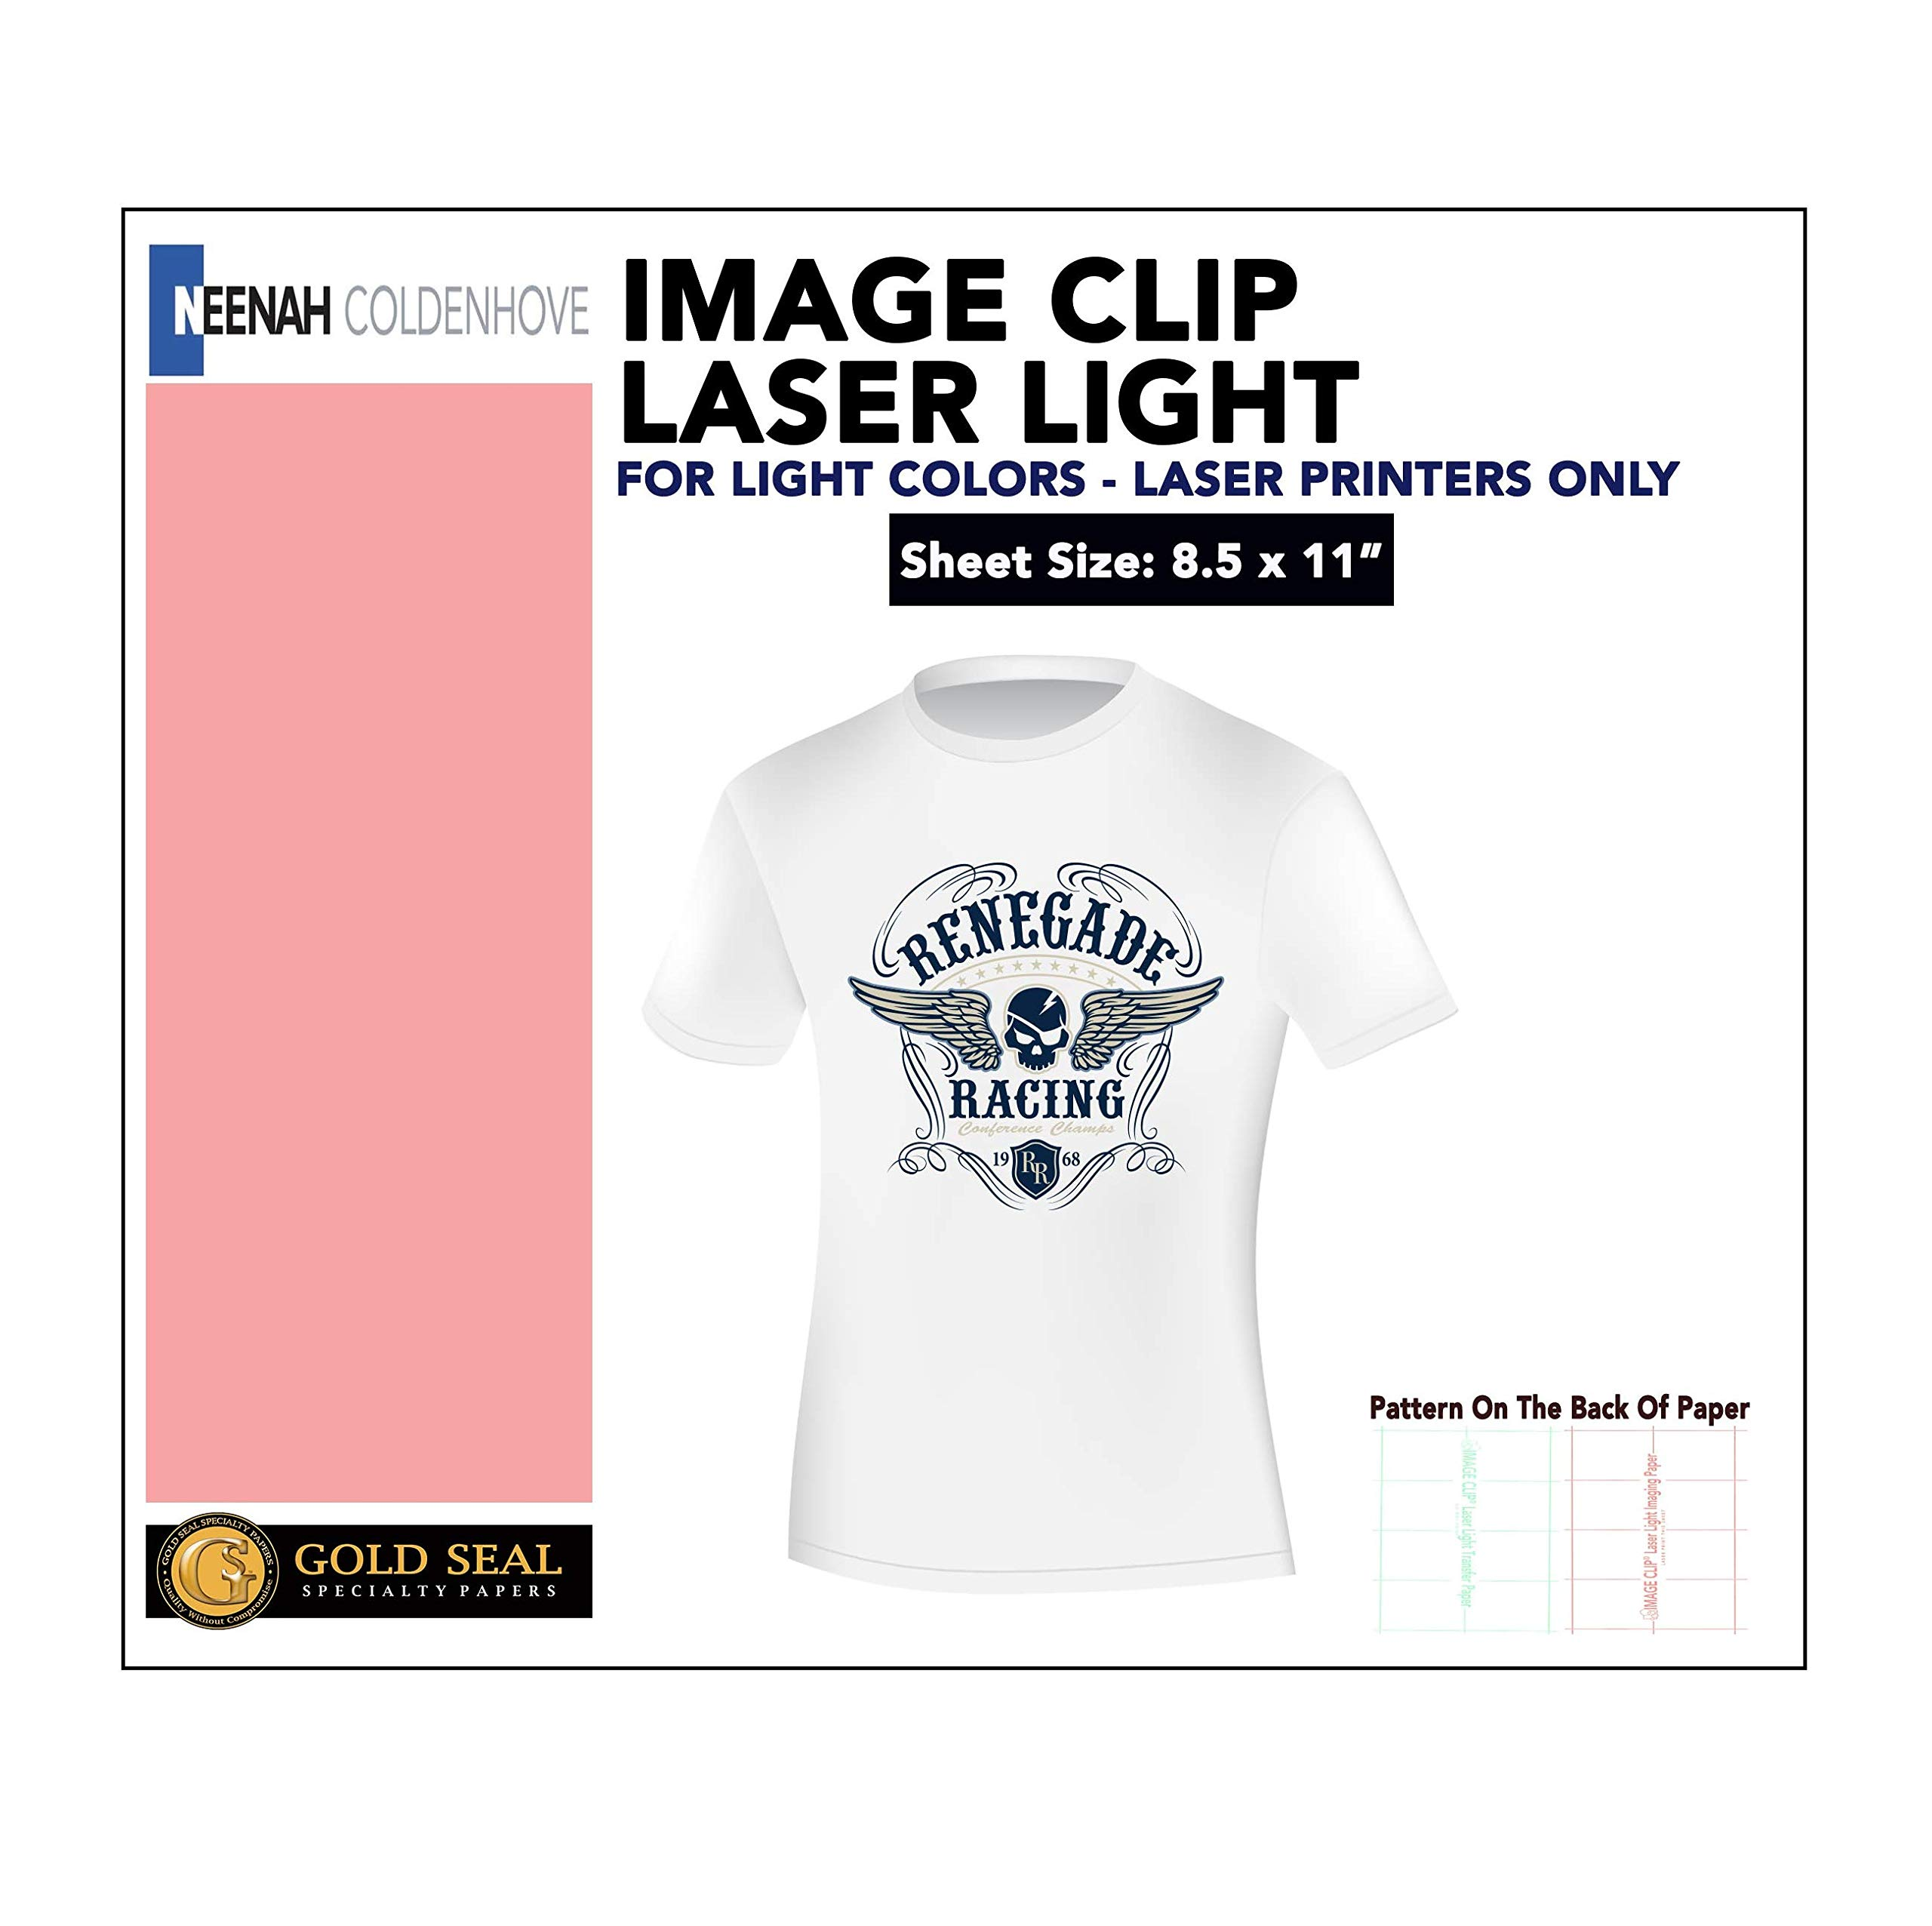 IMAGE CLIP Laser Light Heat Transfer Paper 8.5x11 (100 Sheets) by world-paper